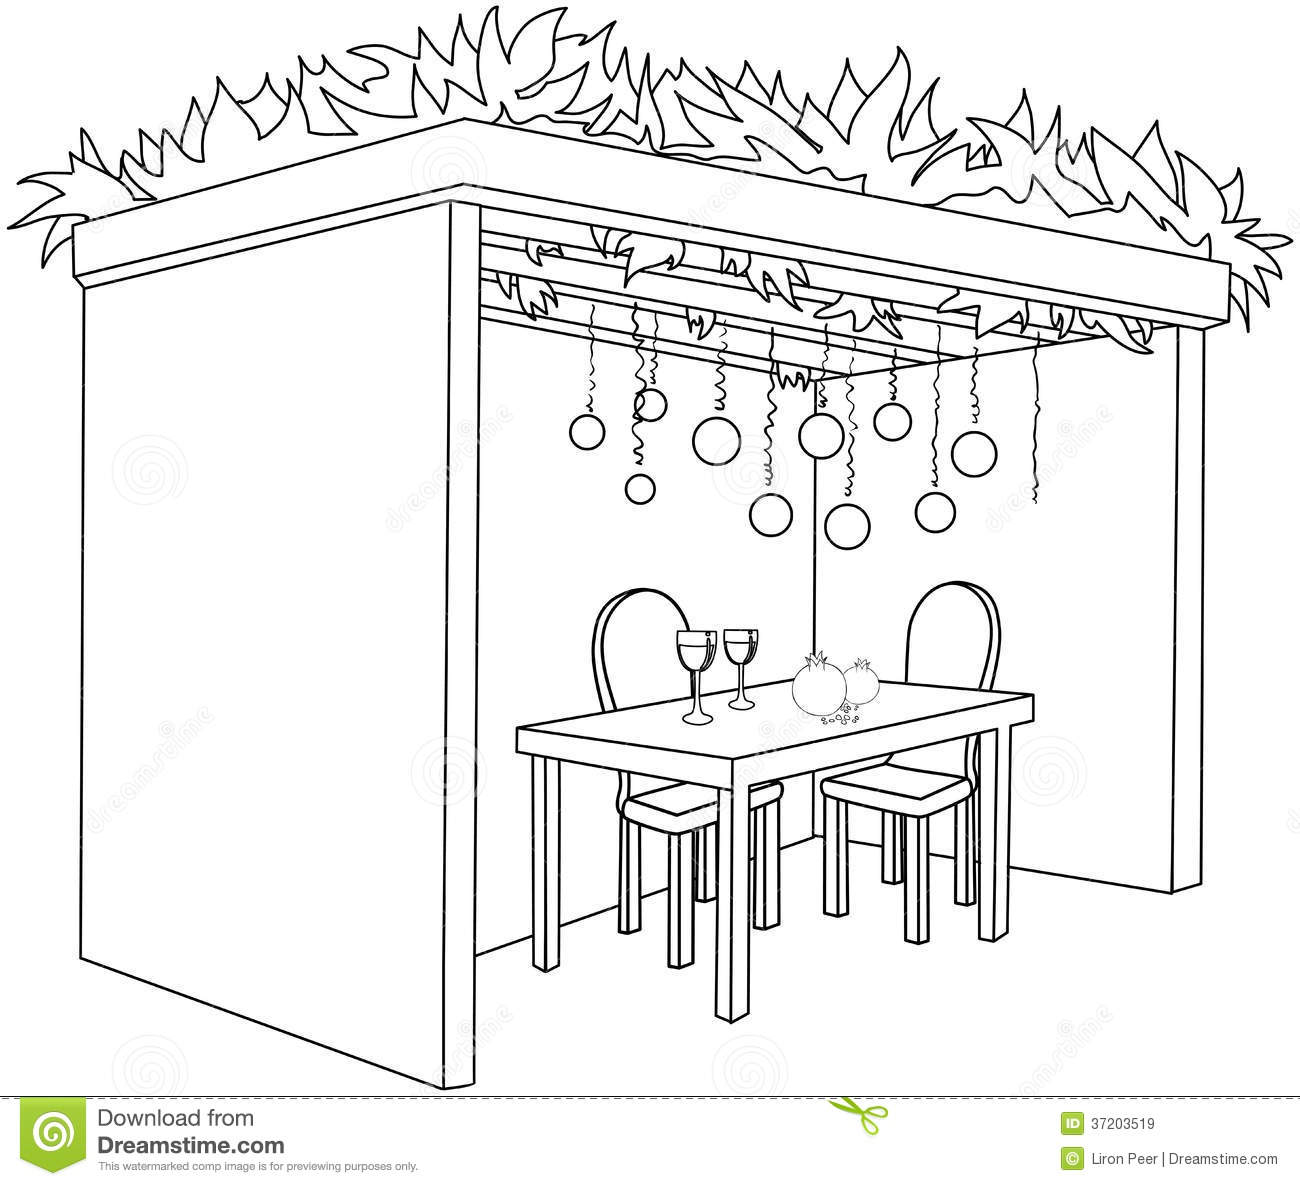 sukkot coloring pages printable - sukkot coloring pages wallpapers coloring pages